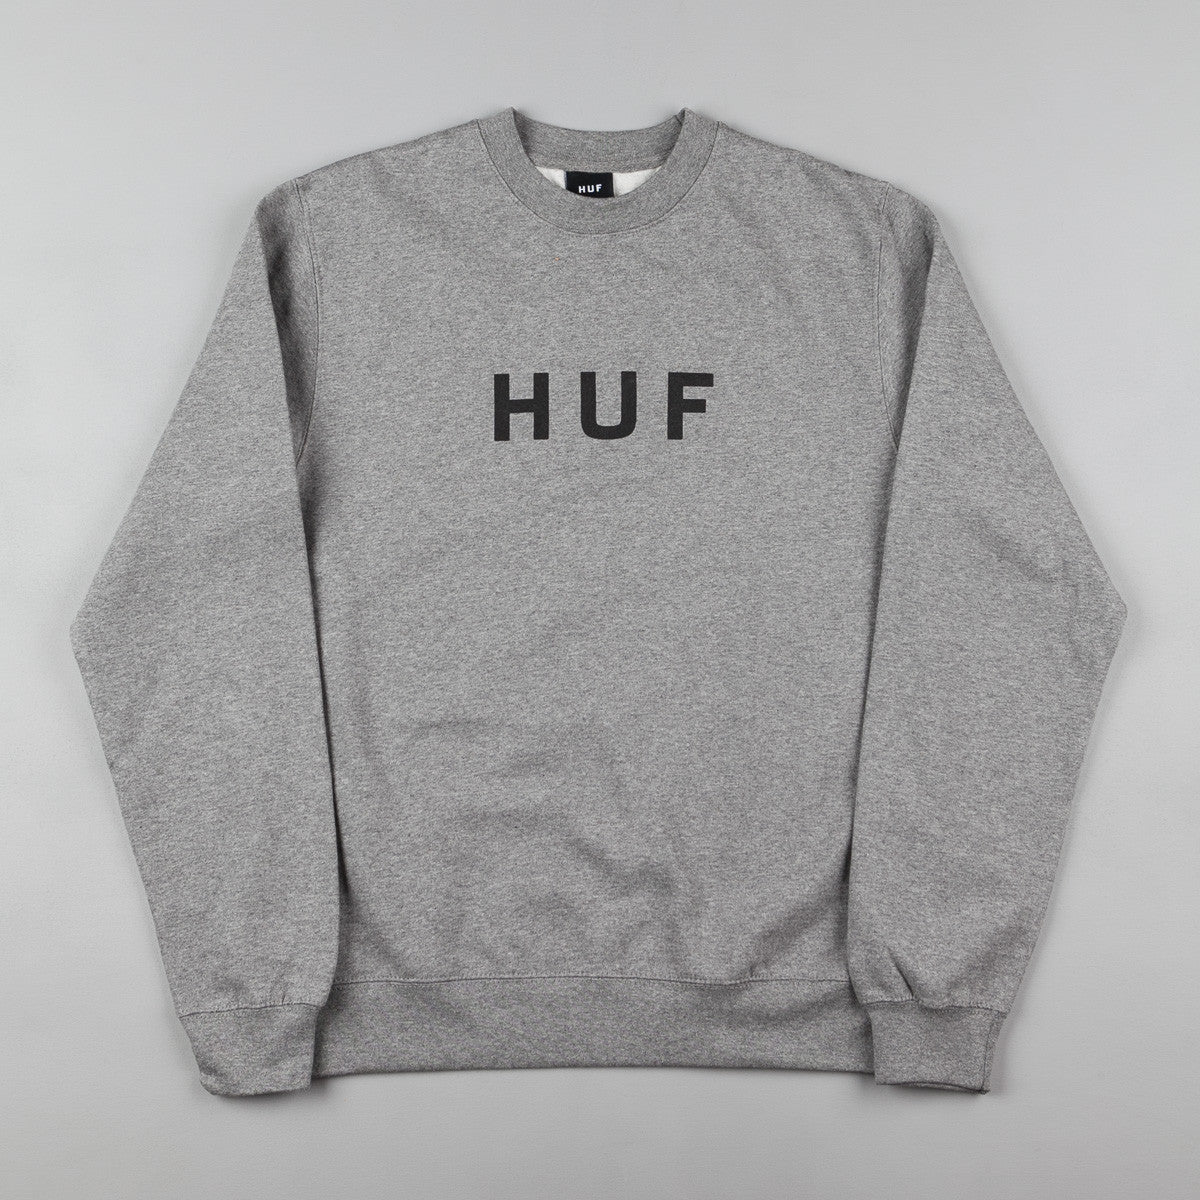 HUF Original Logo Crew Neck Sweatshirt - Heather Grey